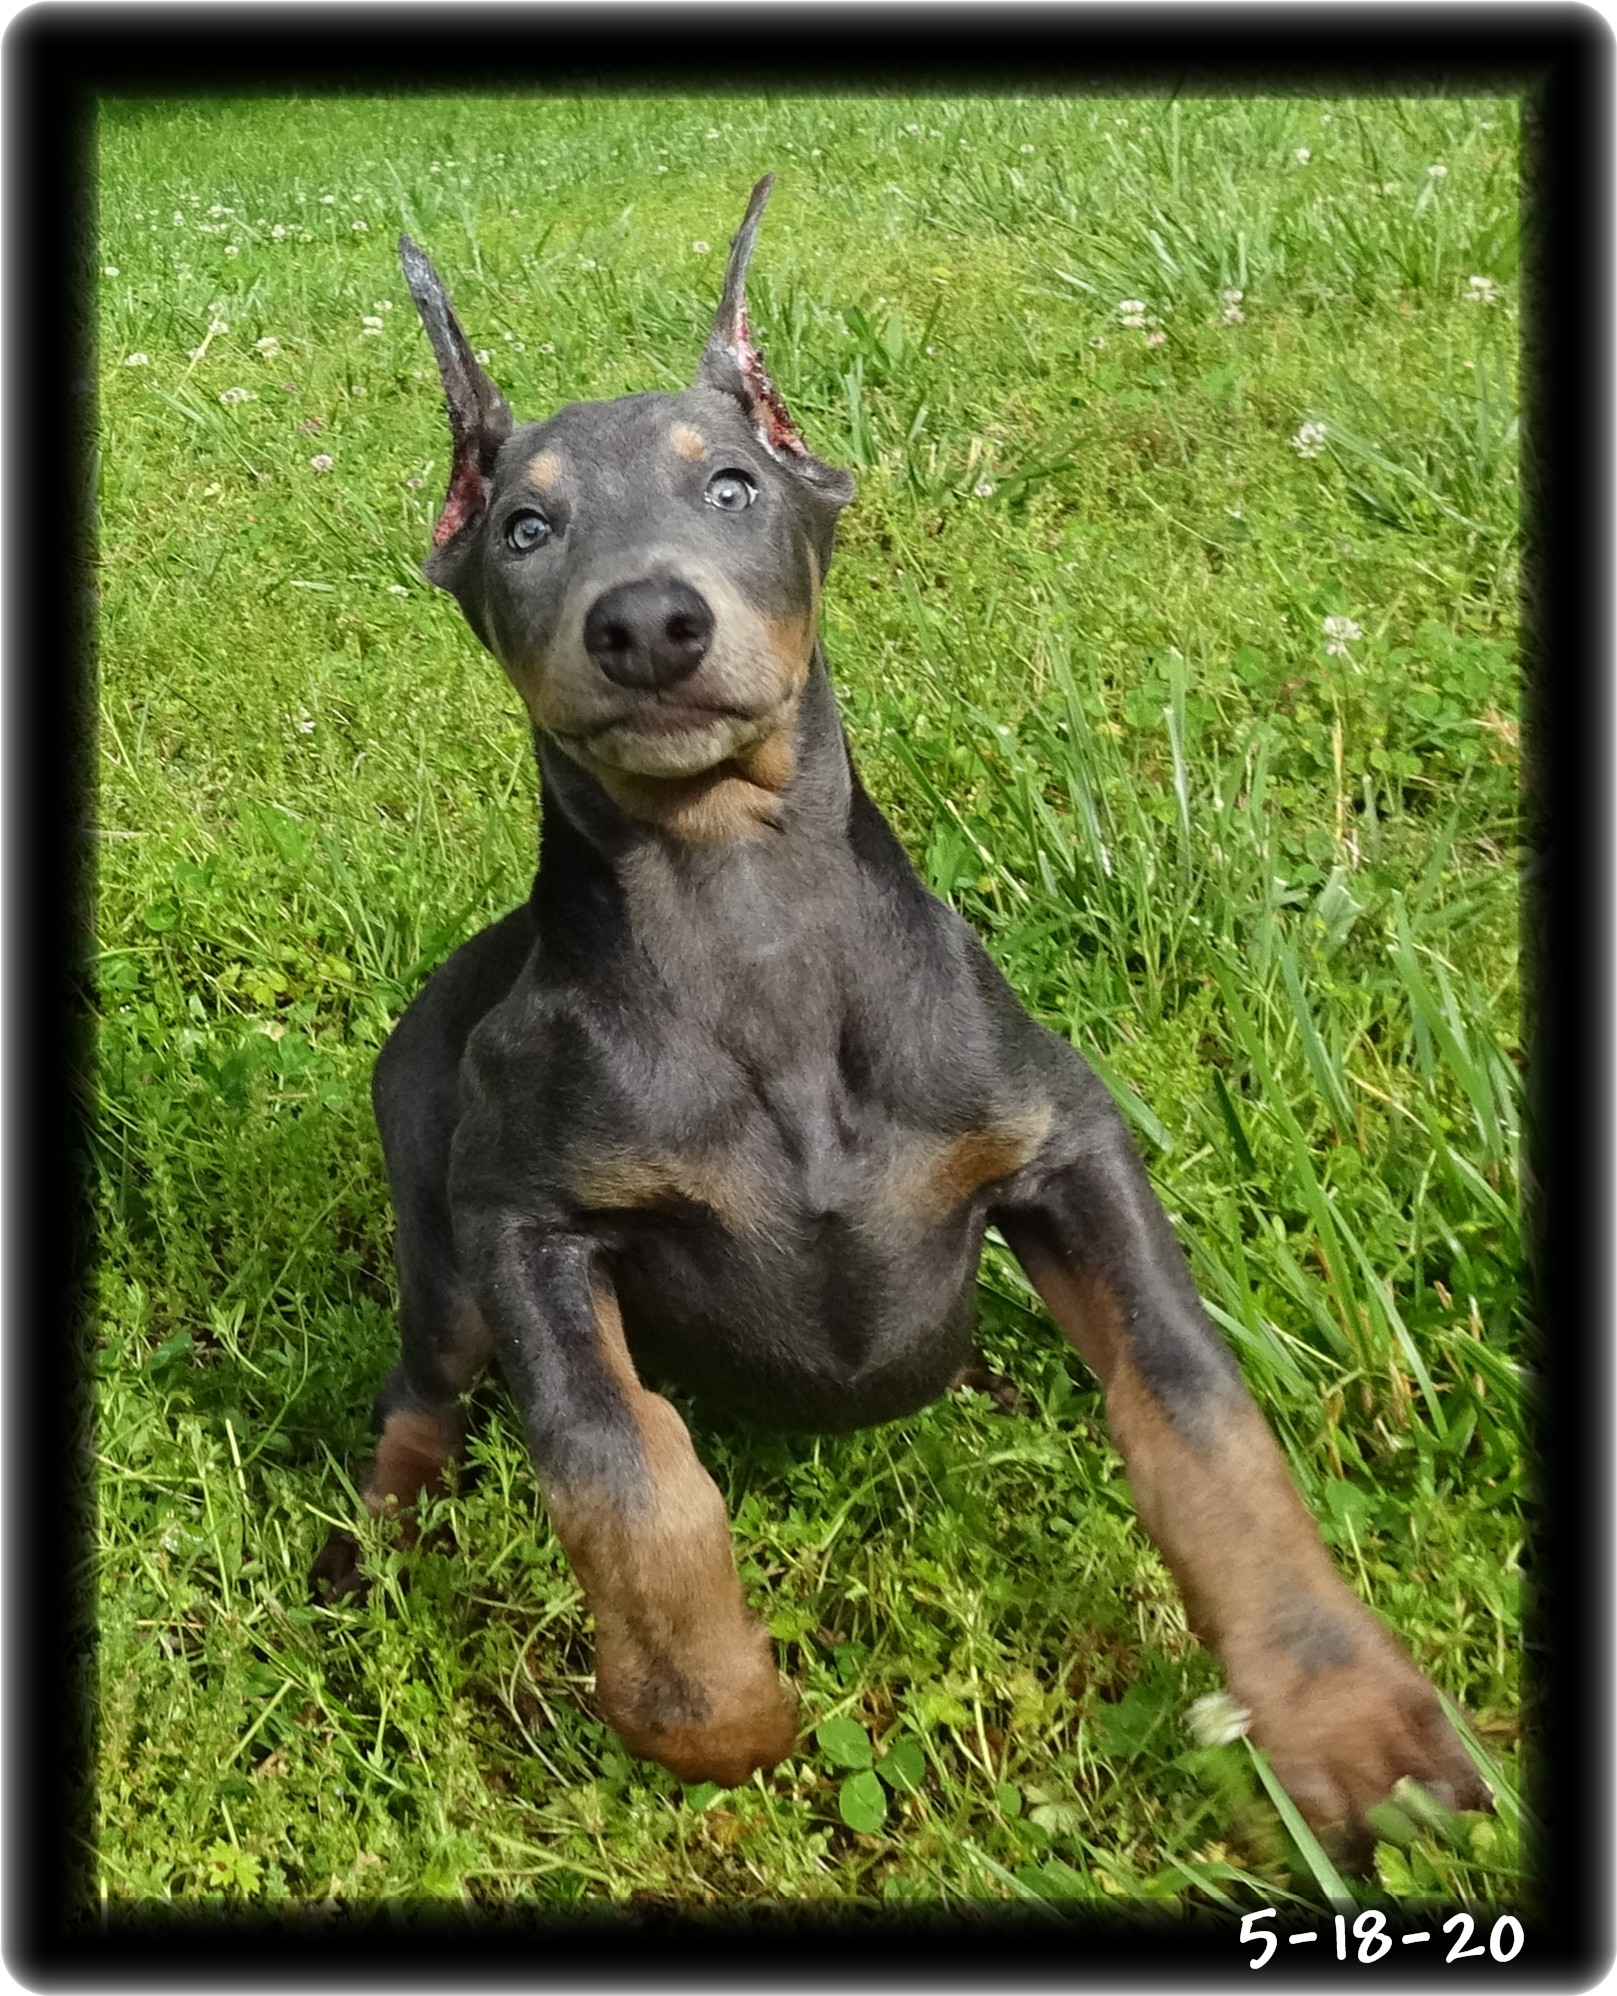 Blu ...  born 2-29-20 -  PLACED - will be a buddy to Mason different residence. Both establish clients ... Massachusetts - both delivered